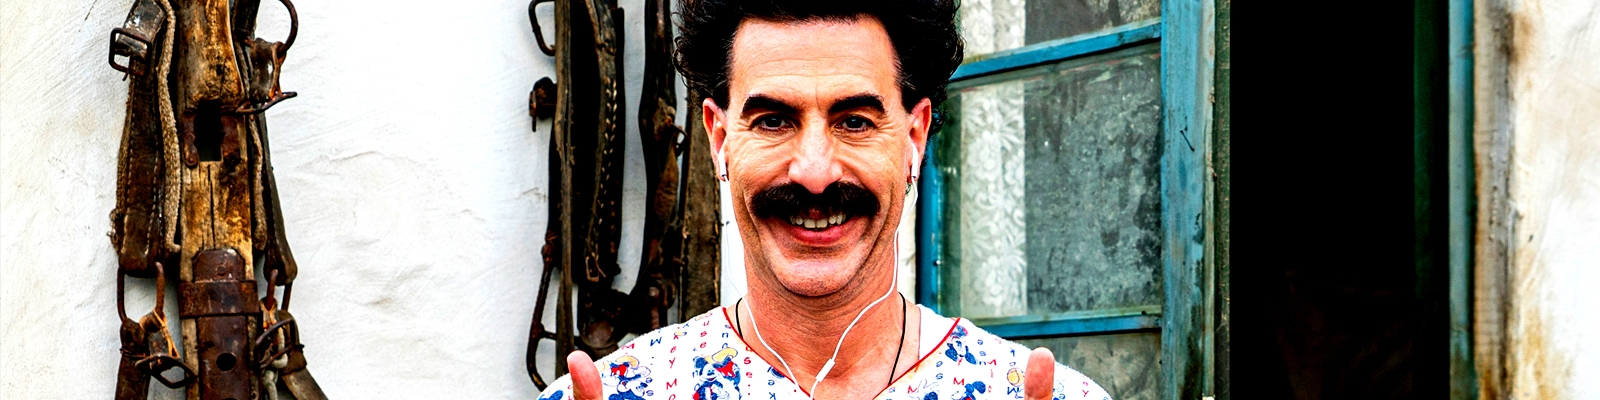 'Borat 2' Is Still Funny, But The Shock Of Open Racism In America Has Worn Off